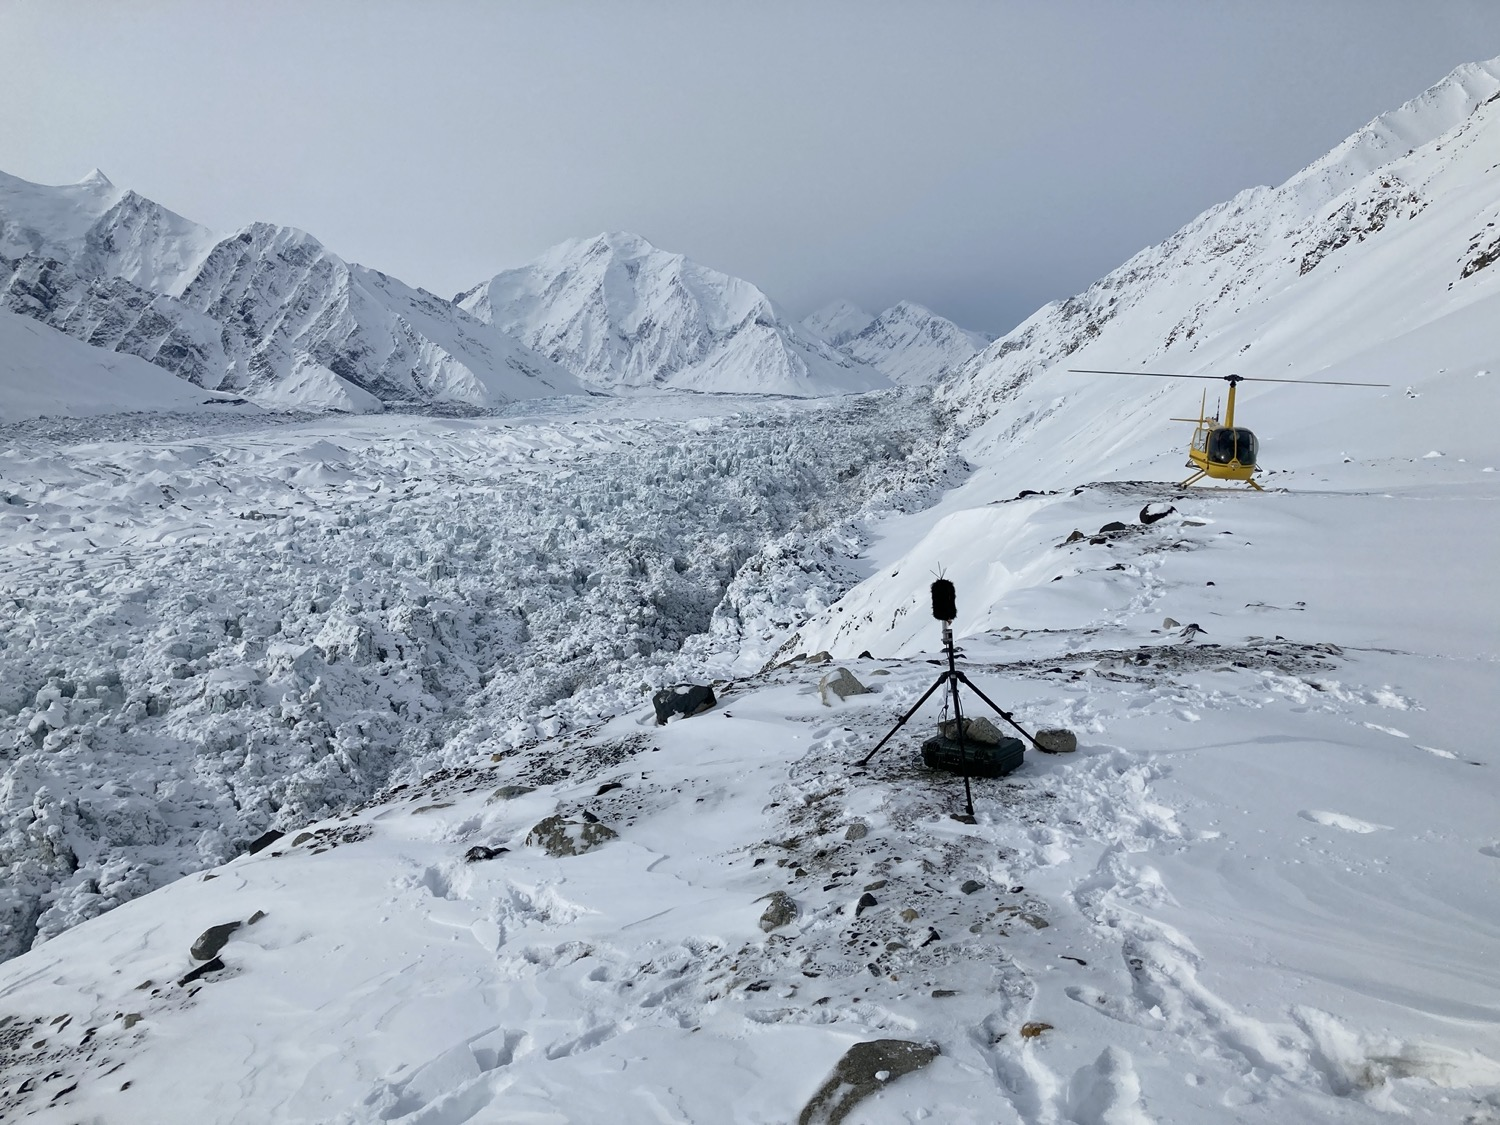 a snowy mountainous landscape, with a microphone on a tripod and a yellow helicopter in the background